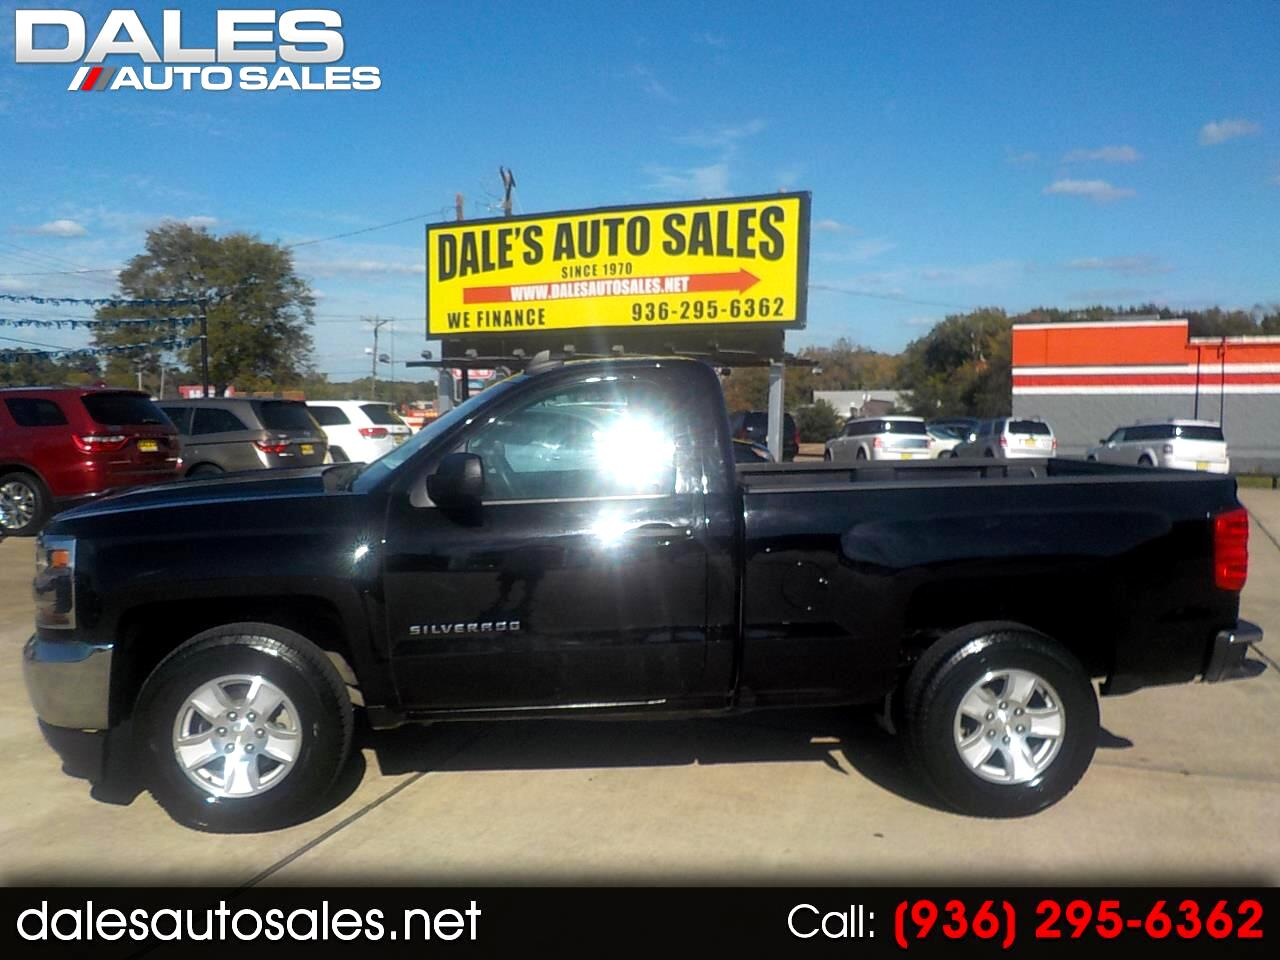 Used 2017 Chevrolet Silverado 1500 2wd Reg Cab 119 0 Ls For Sale In Huntsville Tx 77340 Dale S Auto Sales